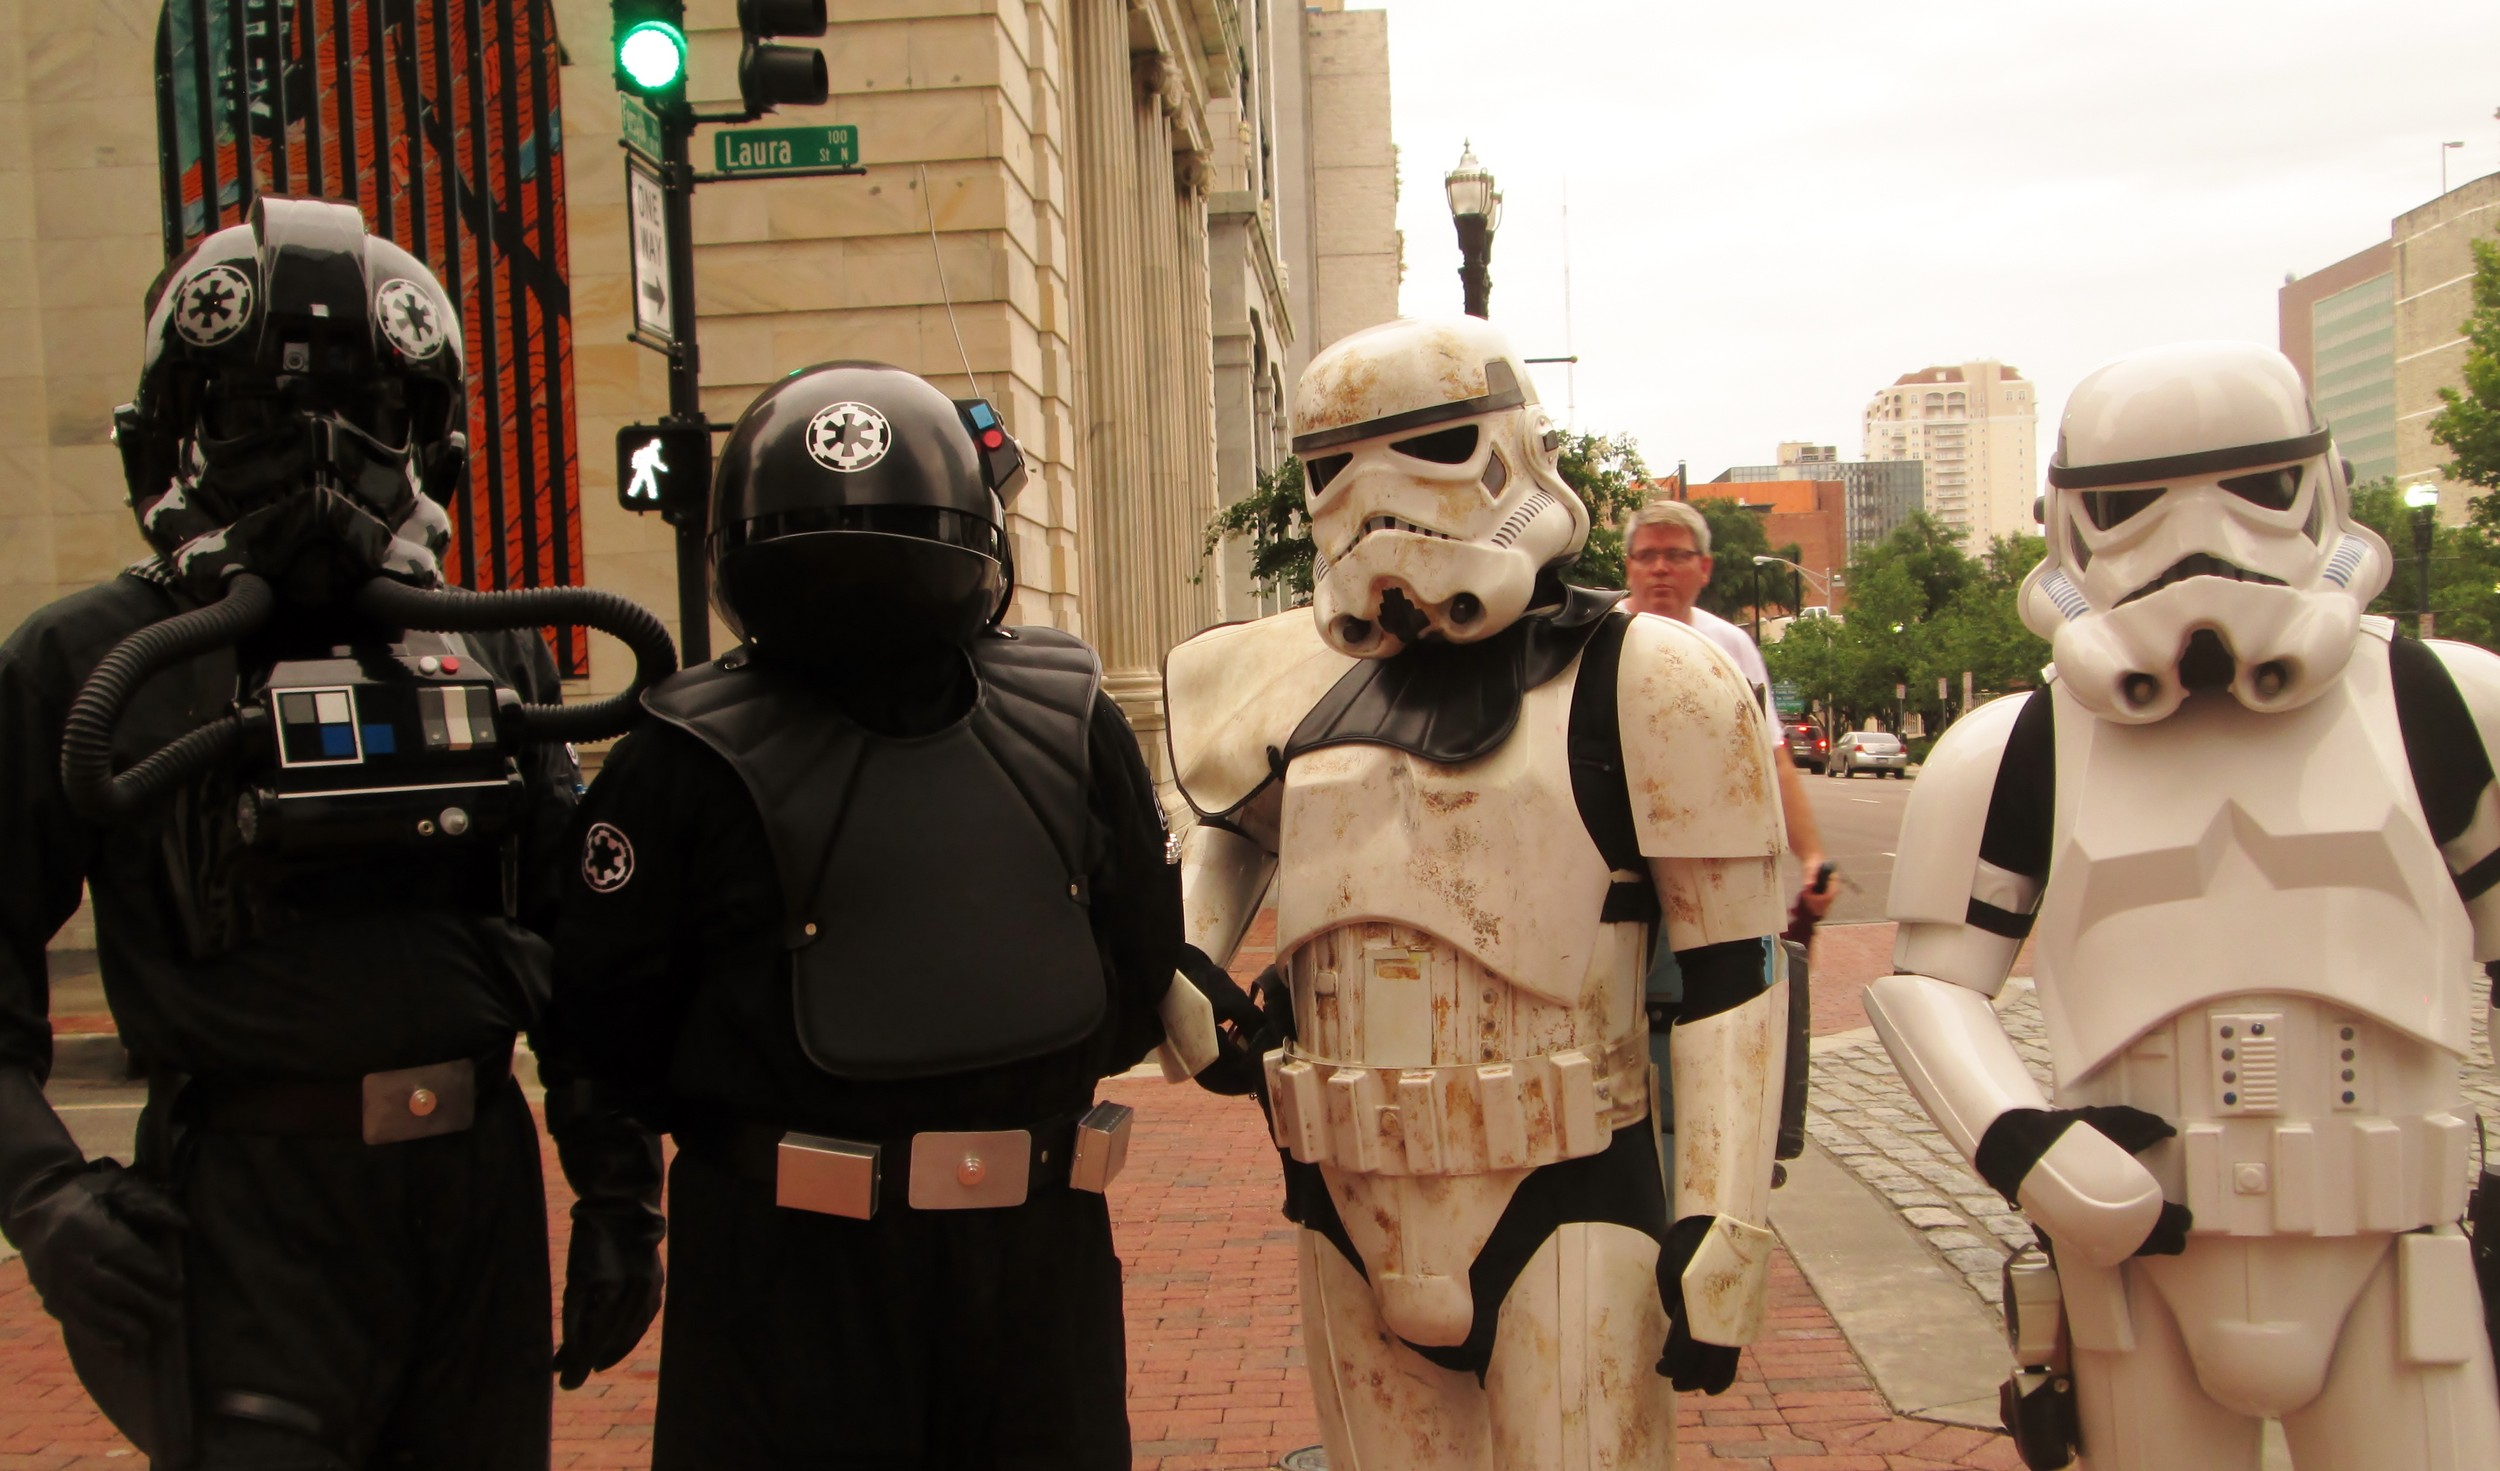 The people who dress as Star Wars characters raise awareness for nonprofit organizations.